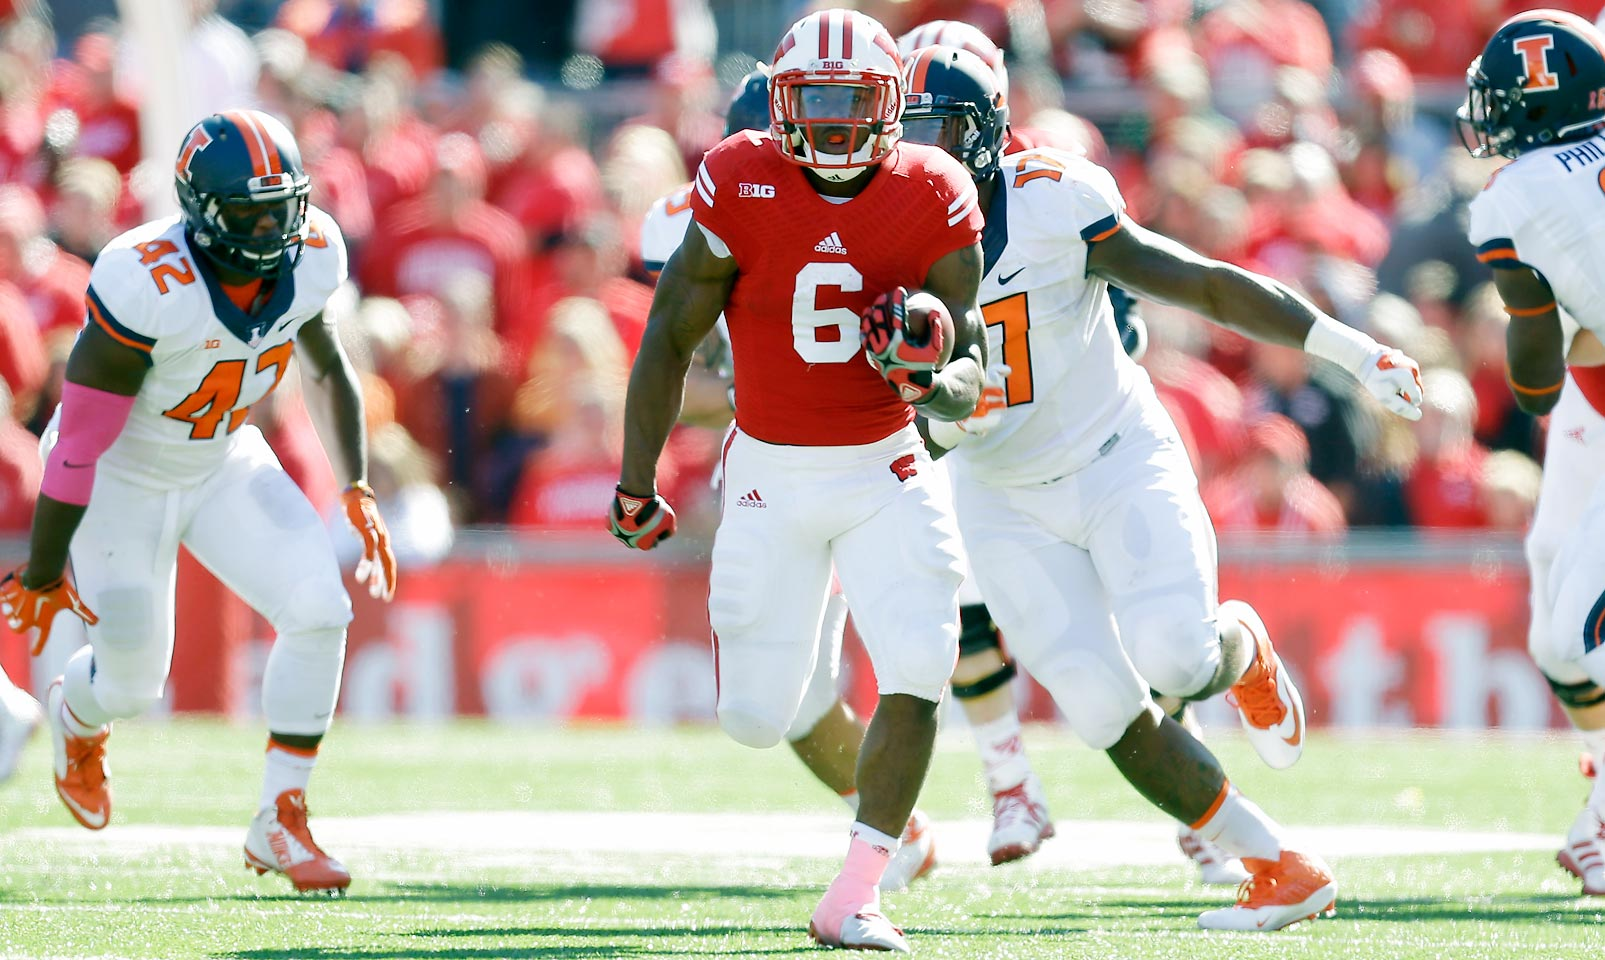 Clement ran for over six yards per carry and nine touchdowns last season when spelling for Heisman finalist Melvin Gordon. With Gordon off to the NFL, Clement is set up to become the latest in the long line of successful Wisconsin running backs.